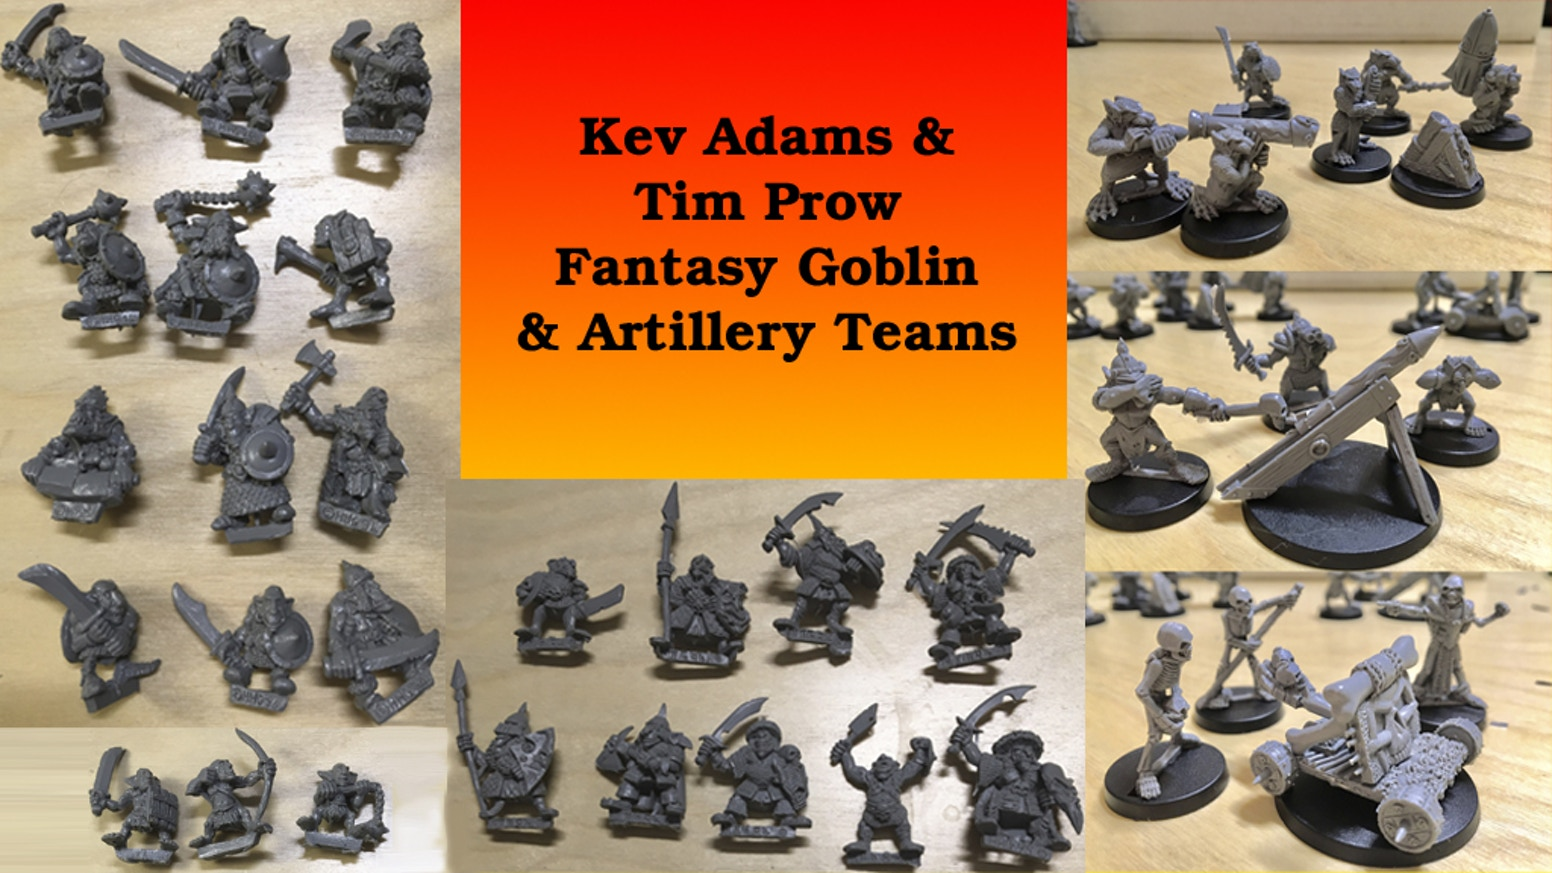 Bringing back full sets of old school  Kev Adams & Tim Prow Goblin and Artillery miniatures from the Heartbreaker miniatures line.